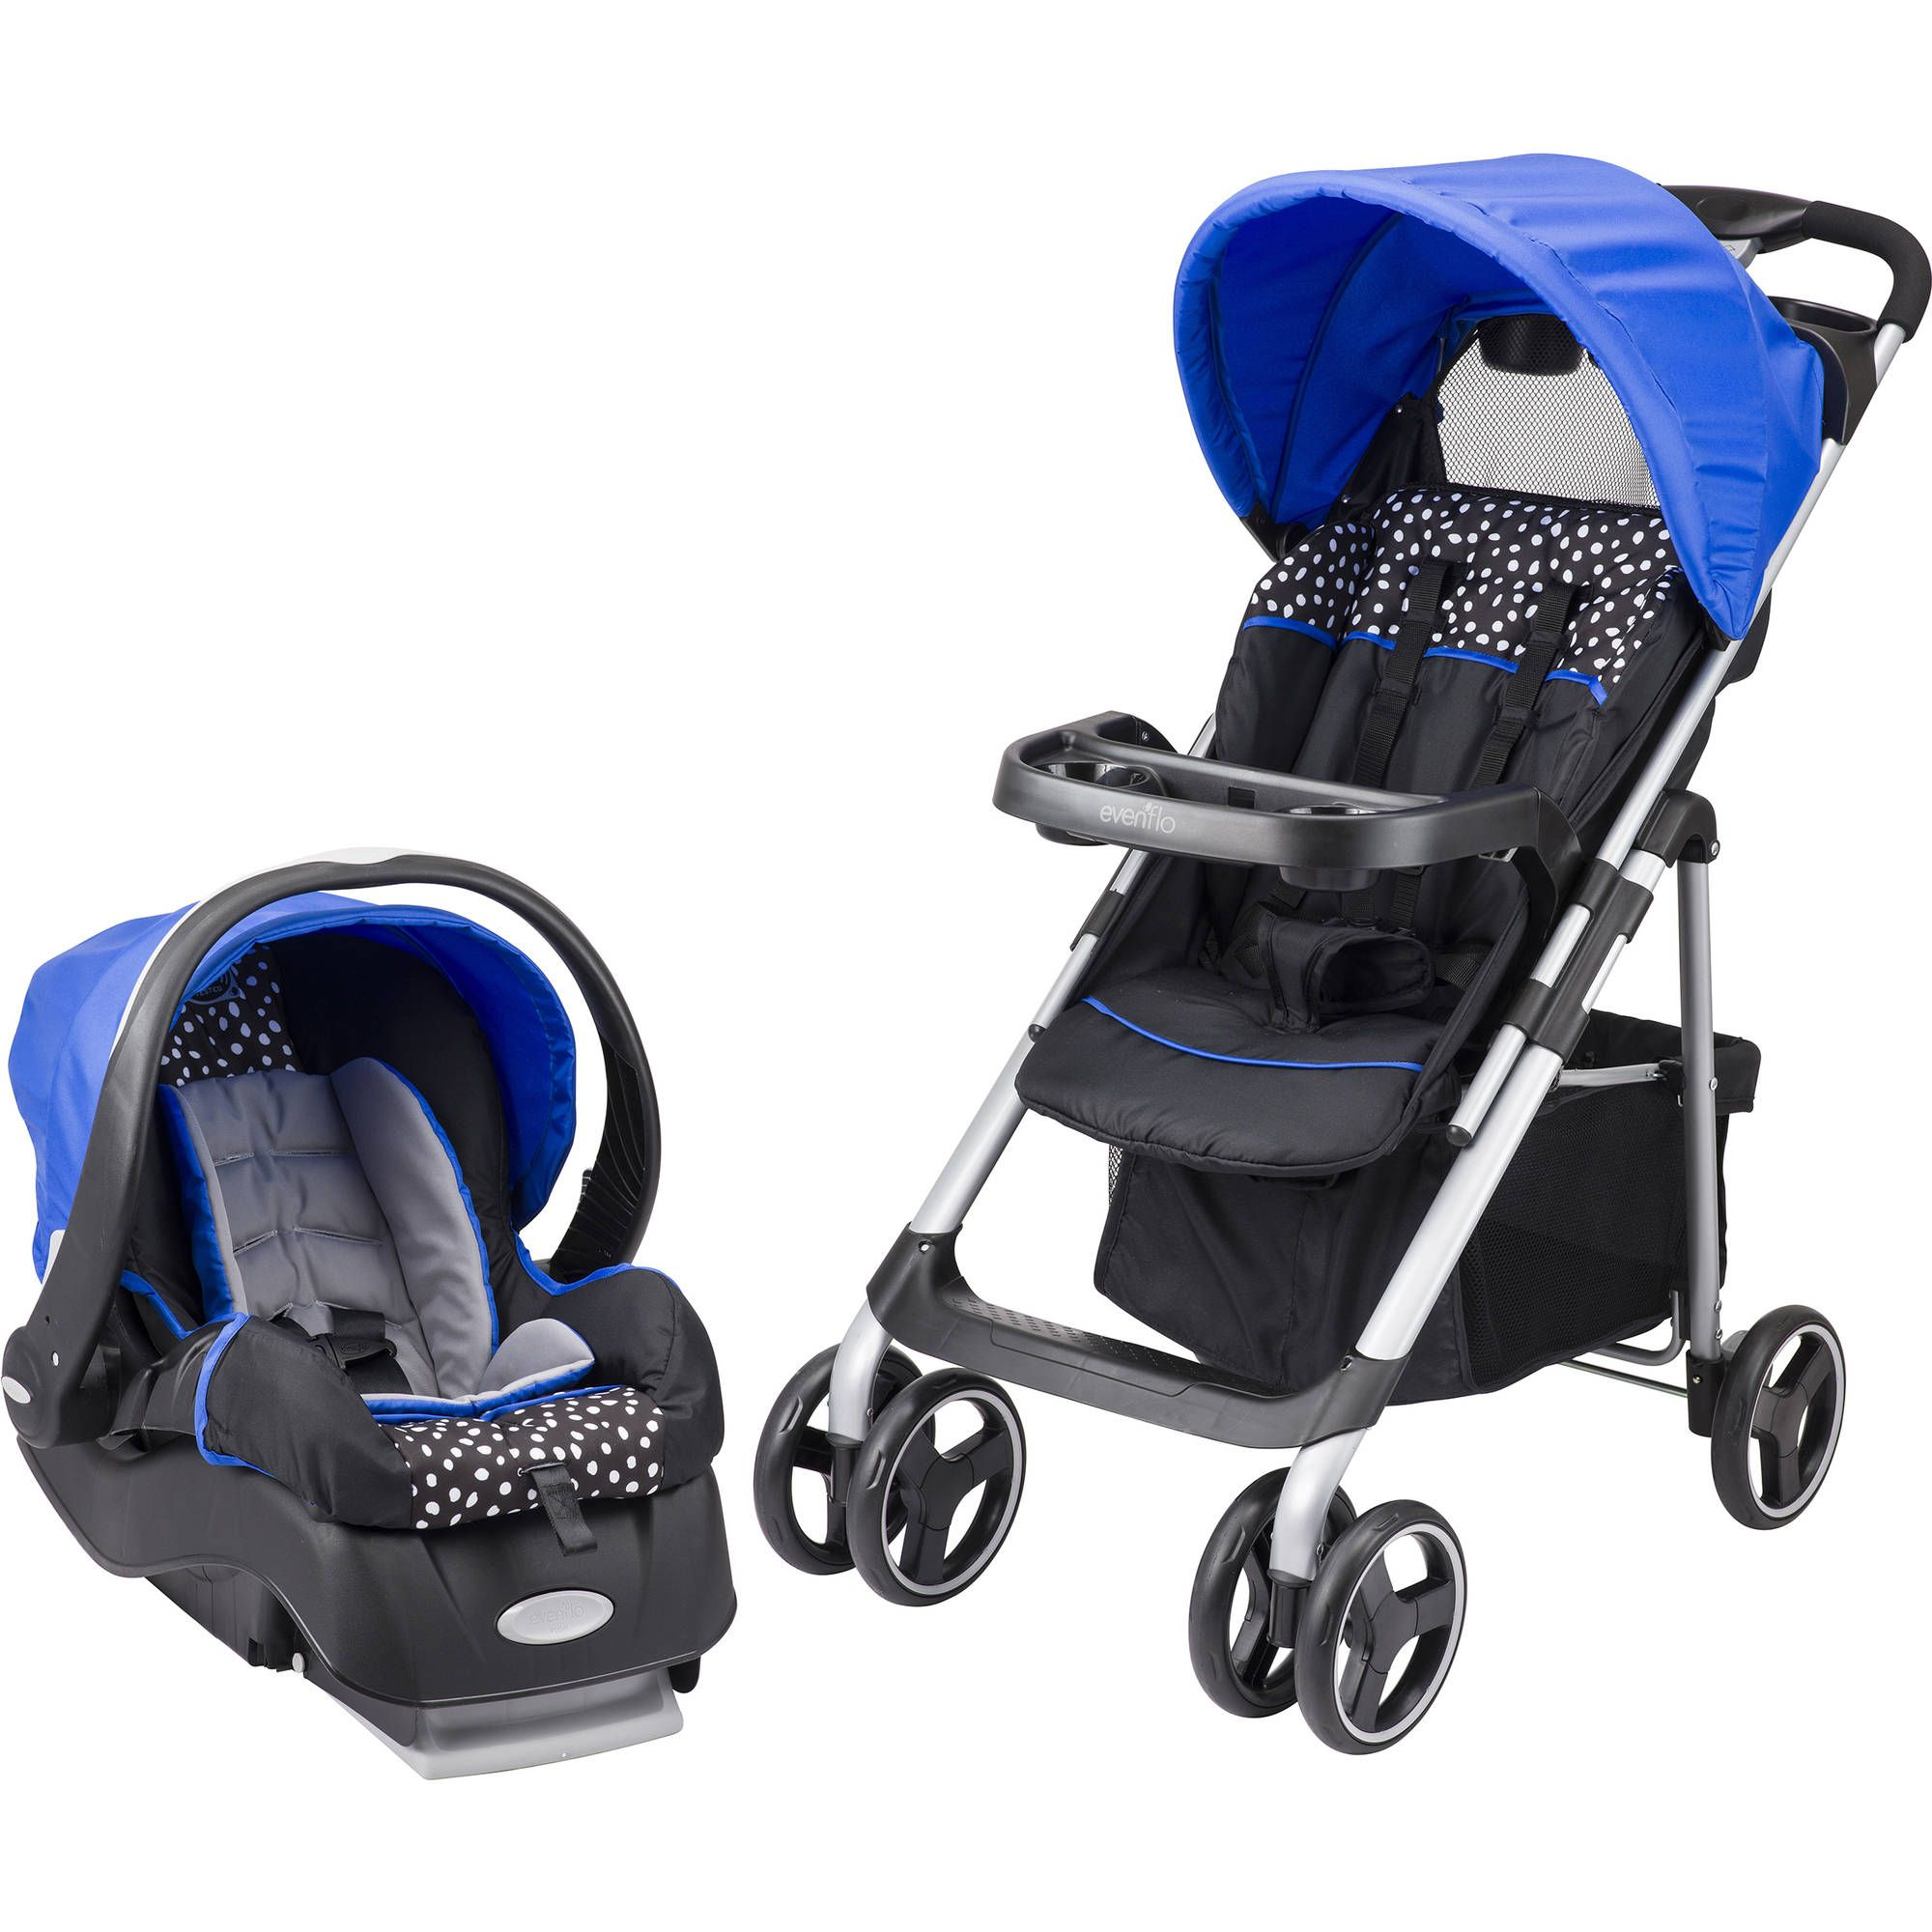 Search and Compare more Baby Care Products at http